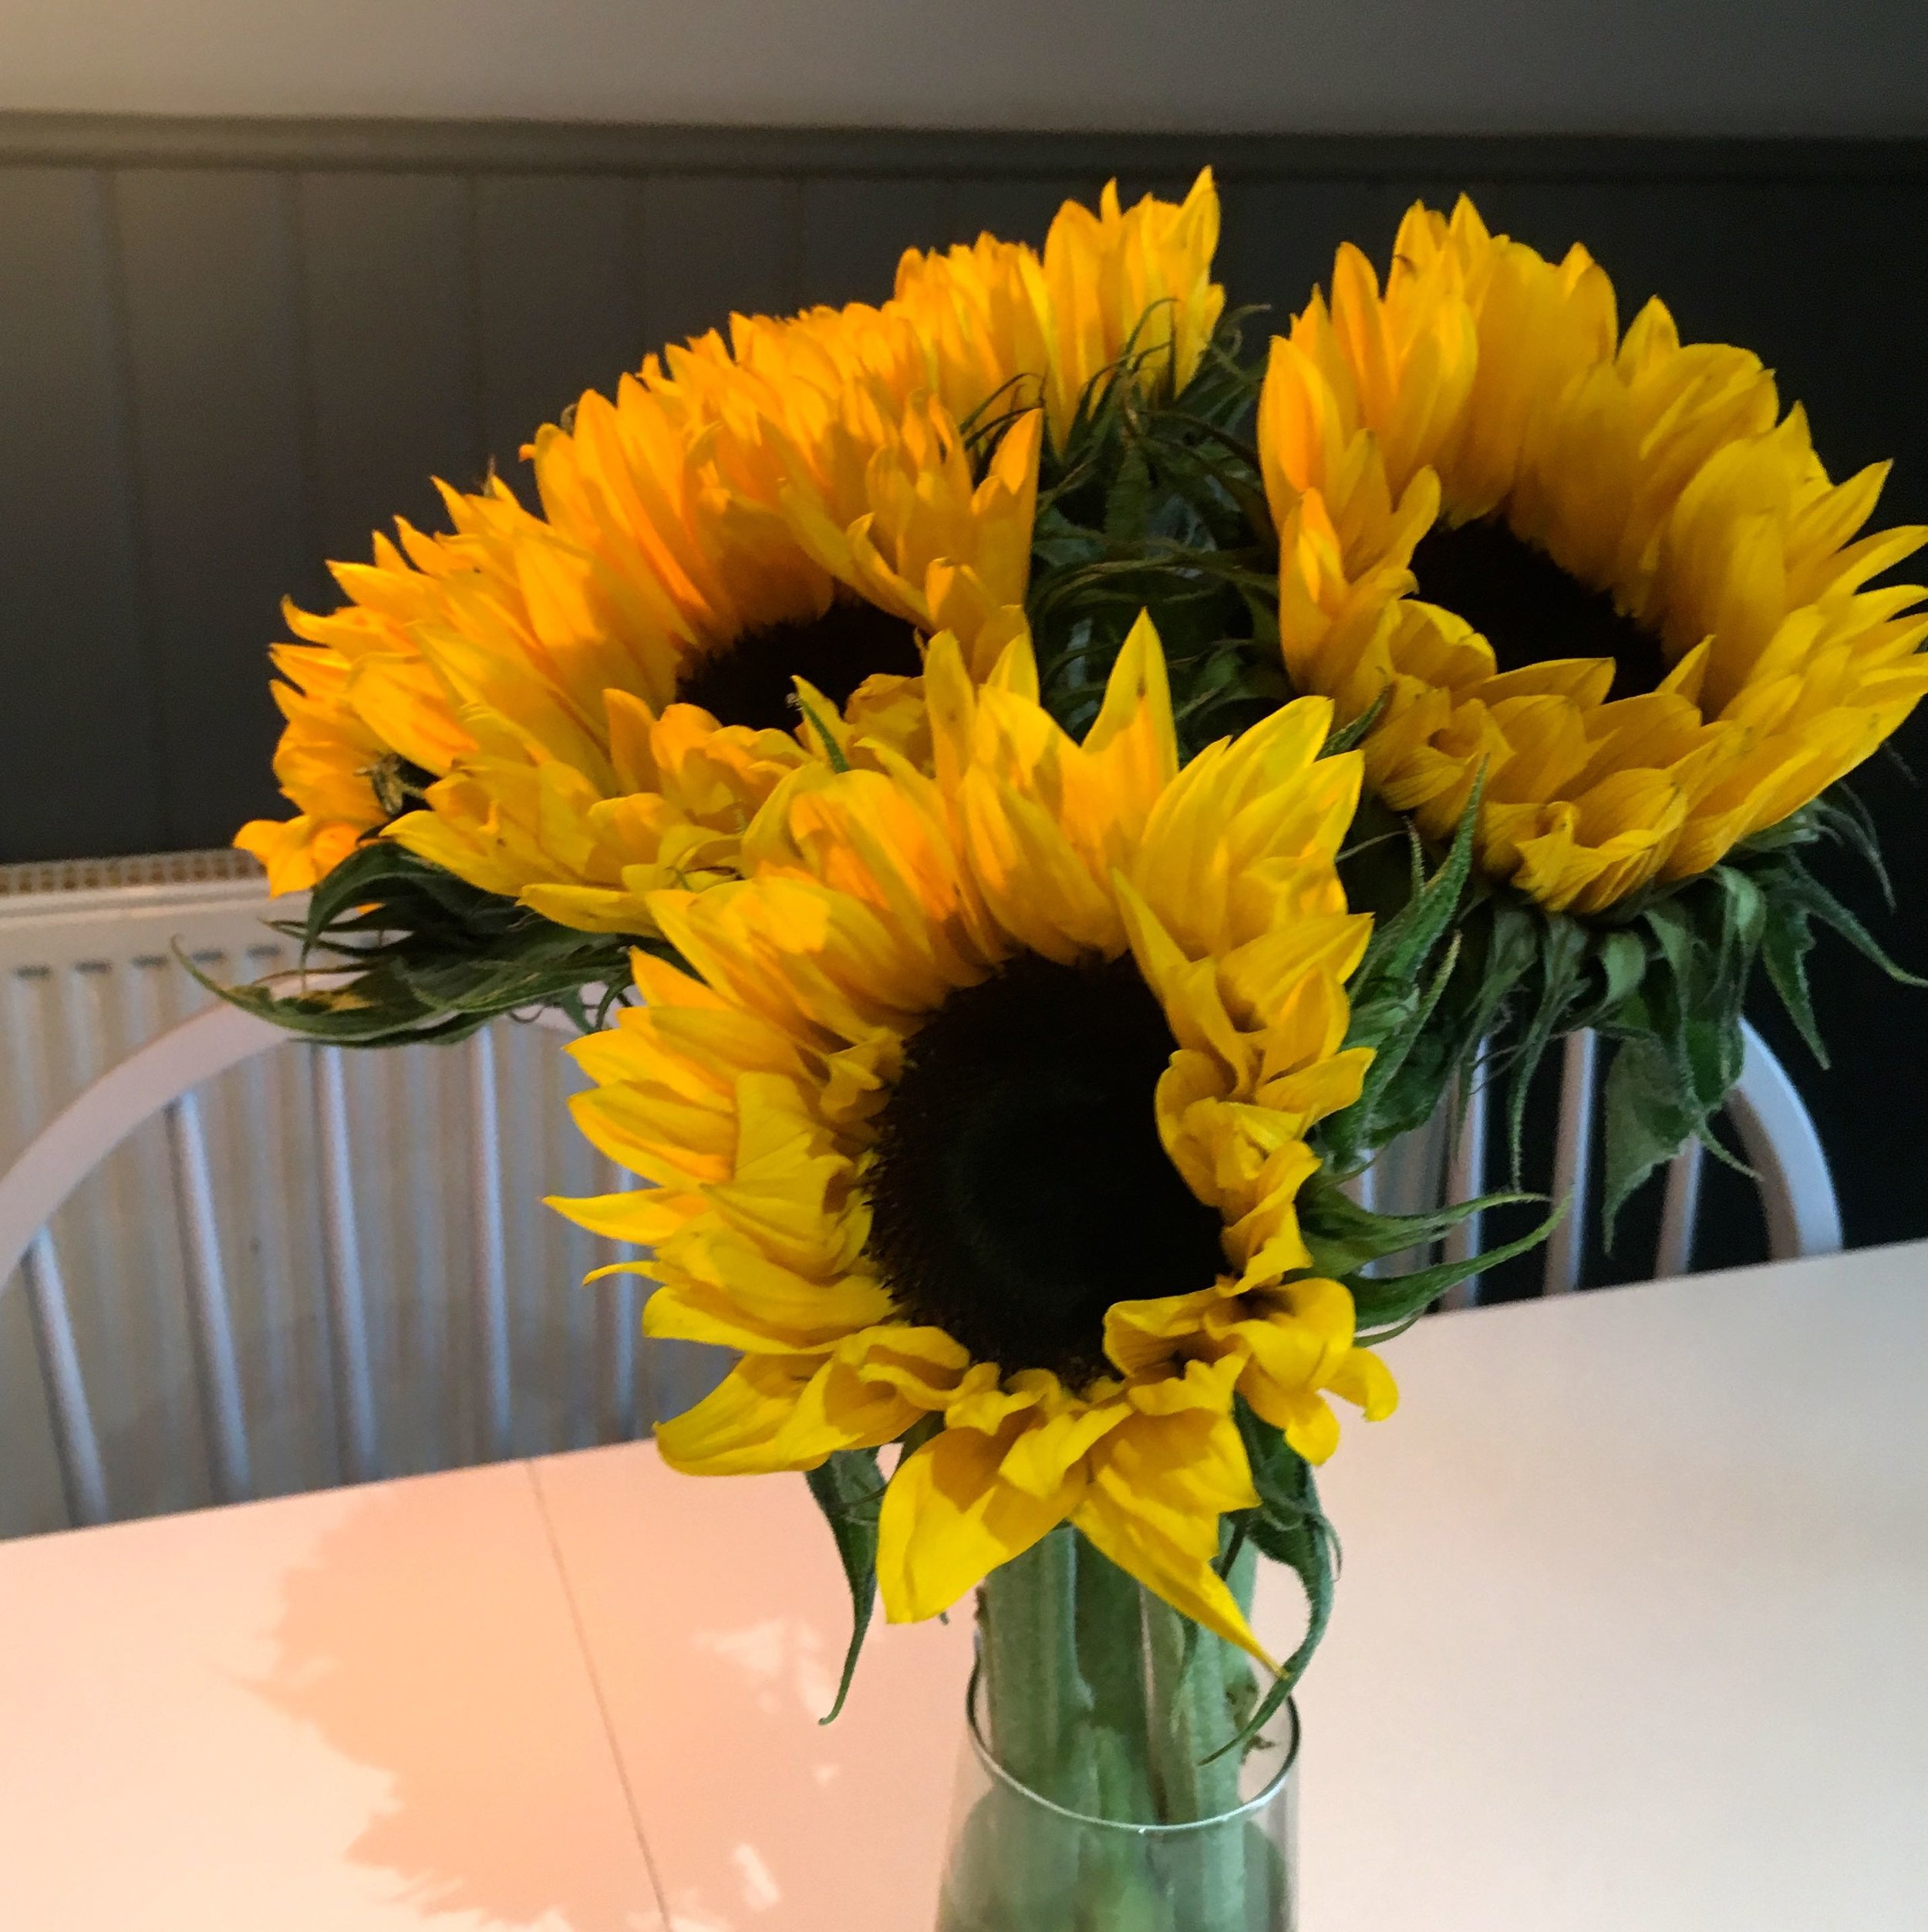 Sunflowers cheering up the newly reopened Trafalgar cafe in Greenwich